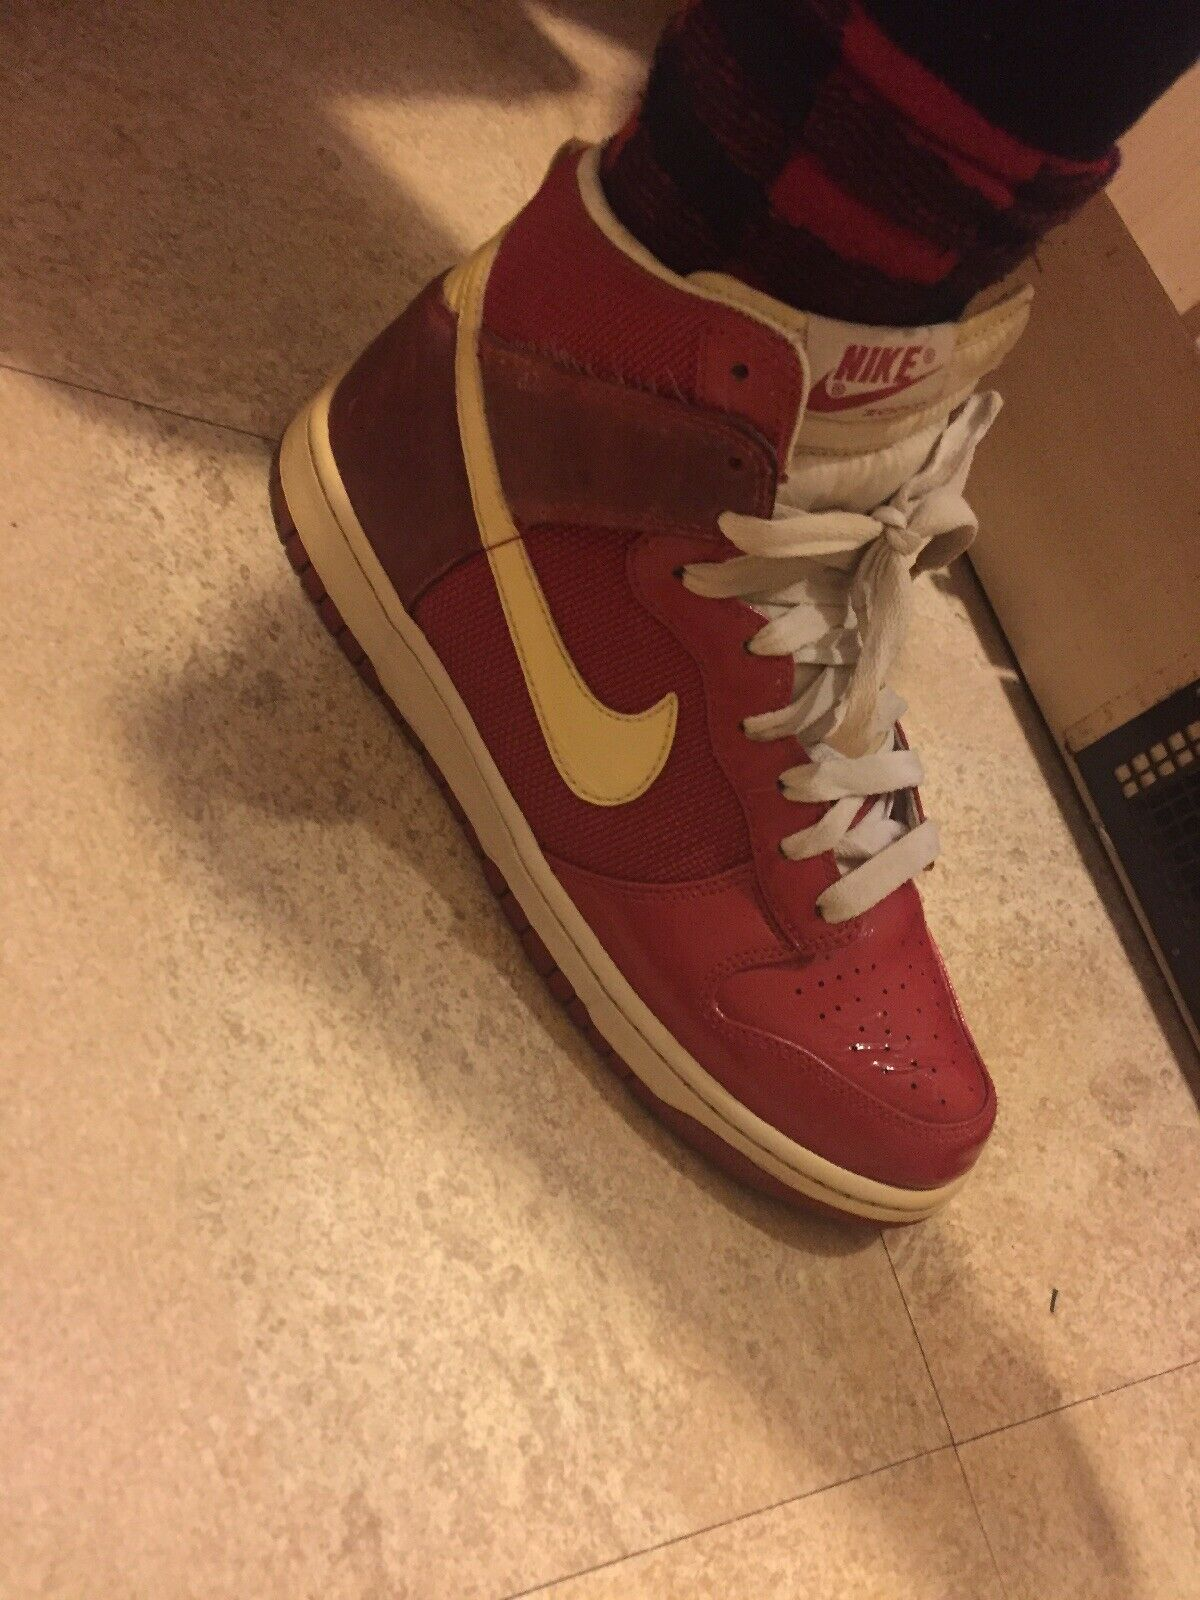 Limited Edition NIKE ZOOM vols dunk rouge & blanc porté Taille 8